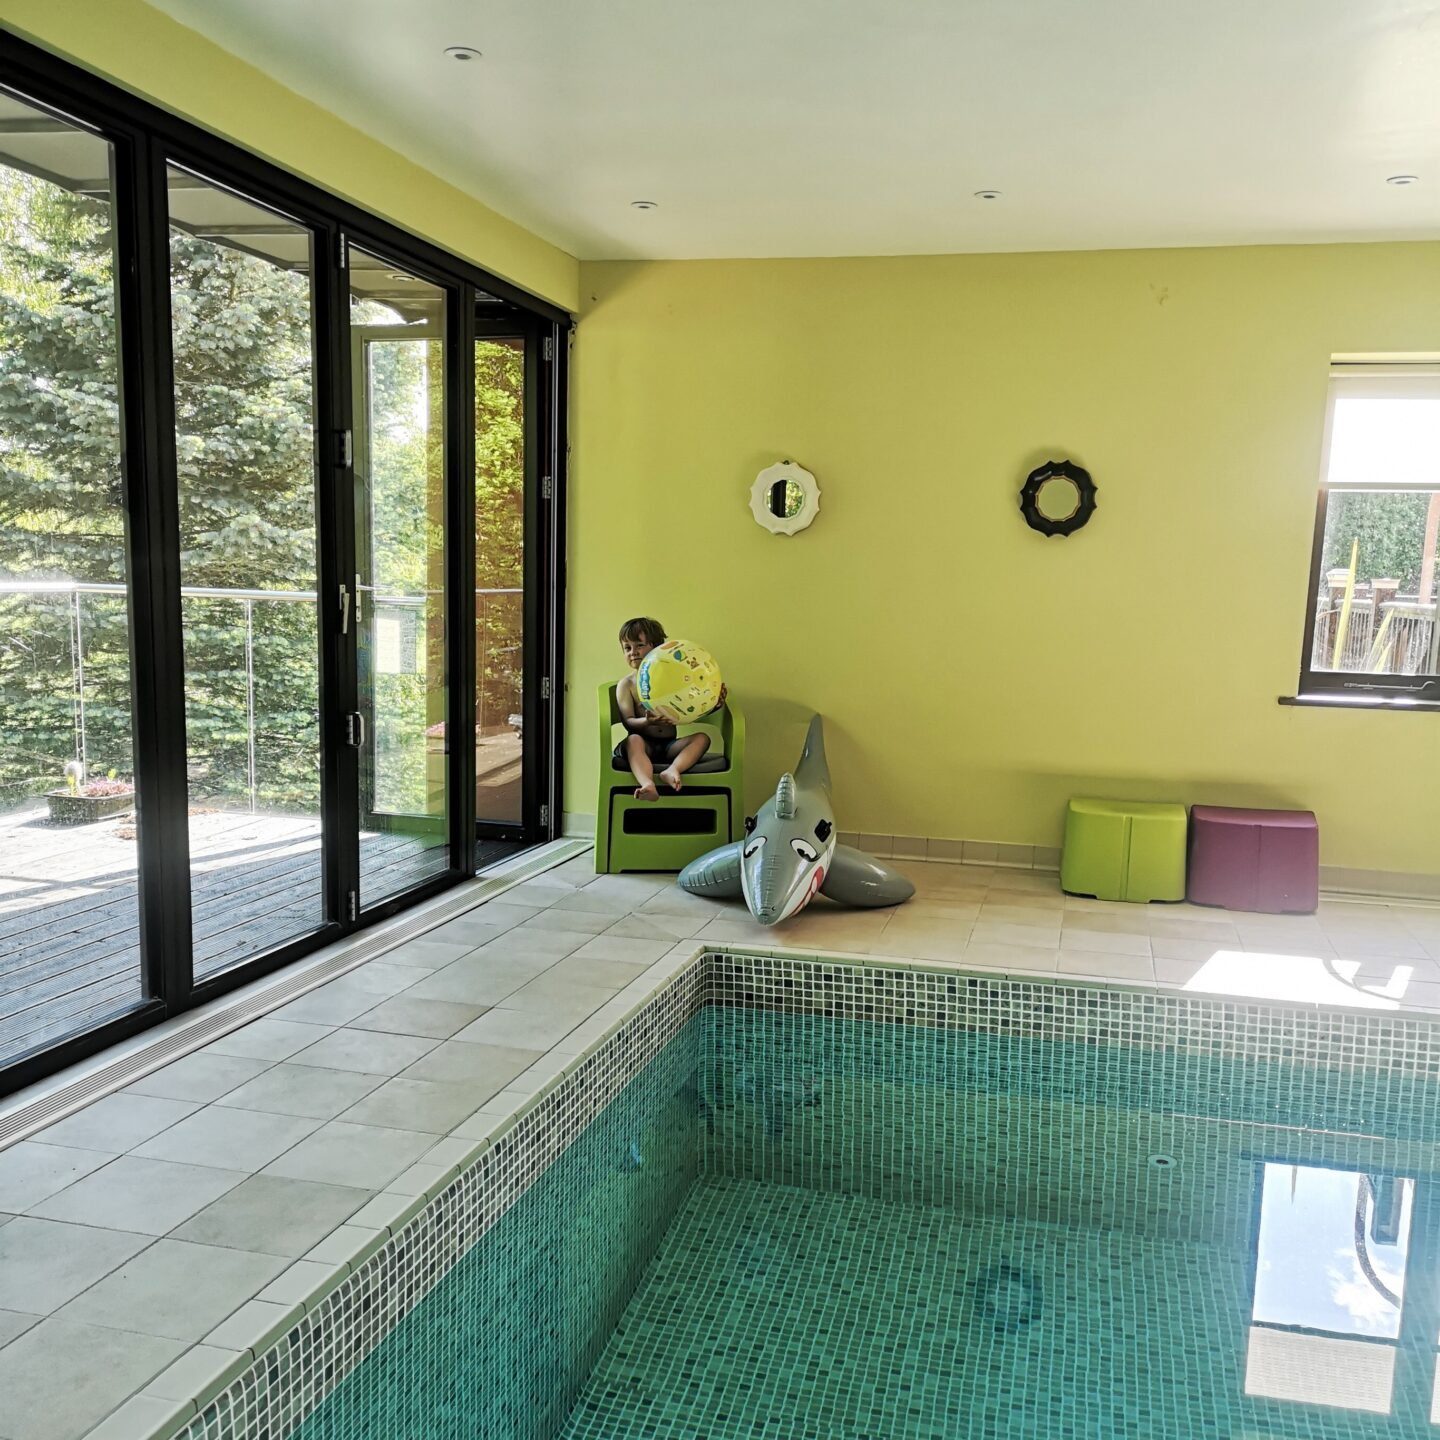 Honeywood Lodge, Bloom Stays, Kent Holiday, Holiday Homes, Cottages In Kent, Kent Life, Staycations, Holiday Accommodation Agency, Visit Kent, Canterbury, the Frenchie Mummy